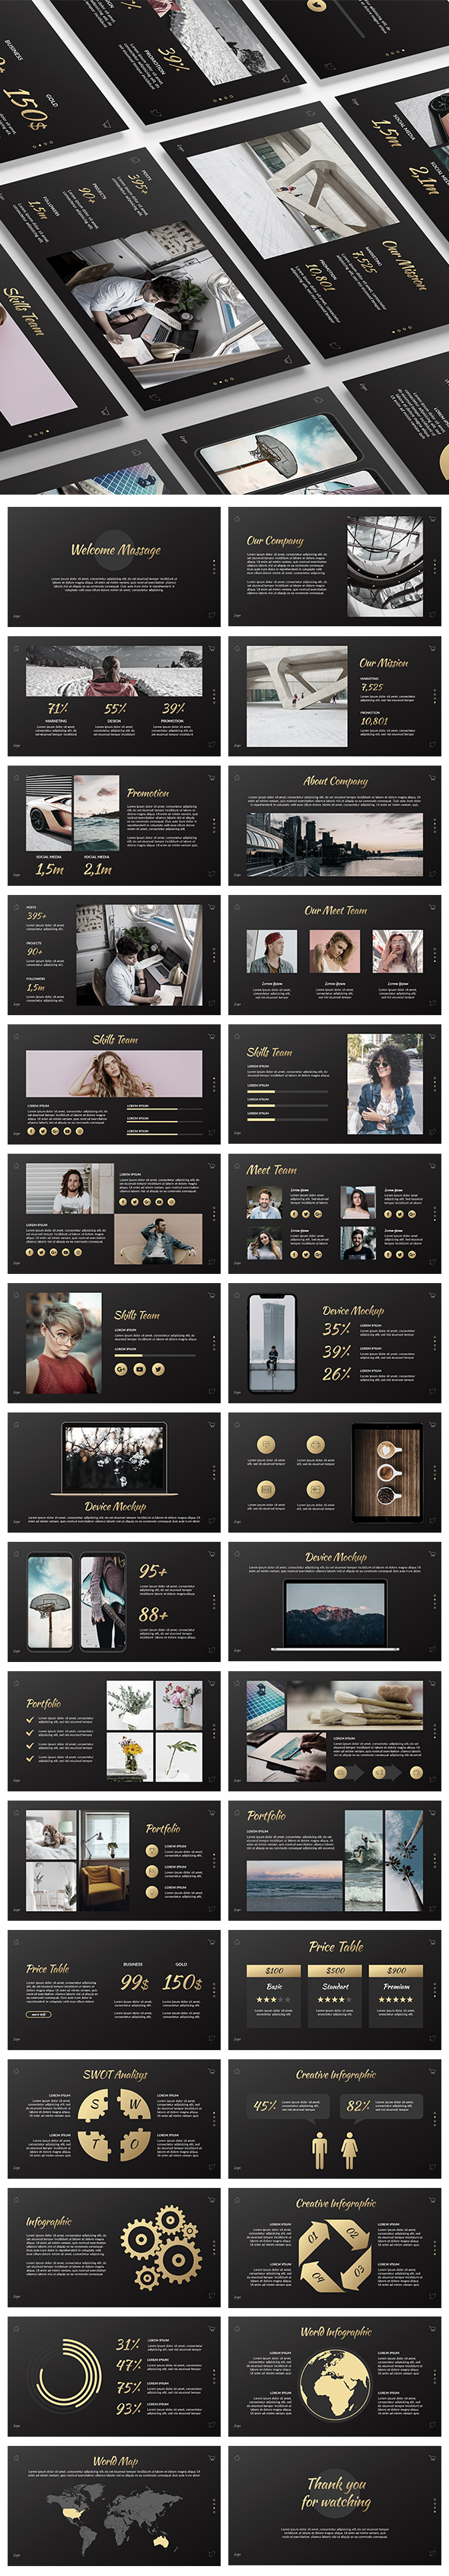 Fashion PowerPoint Presentation - Business PowerPoint Templates